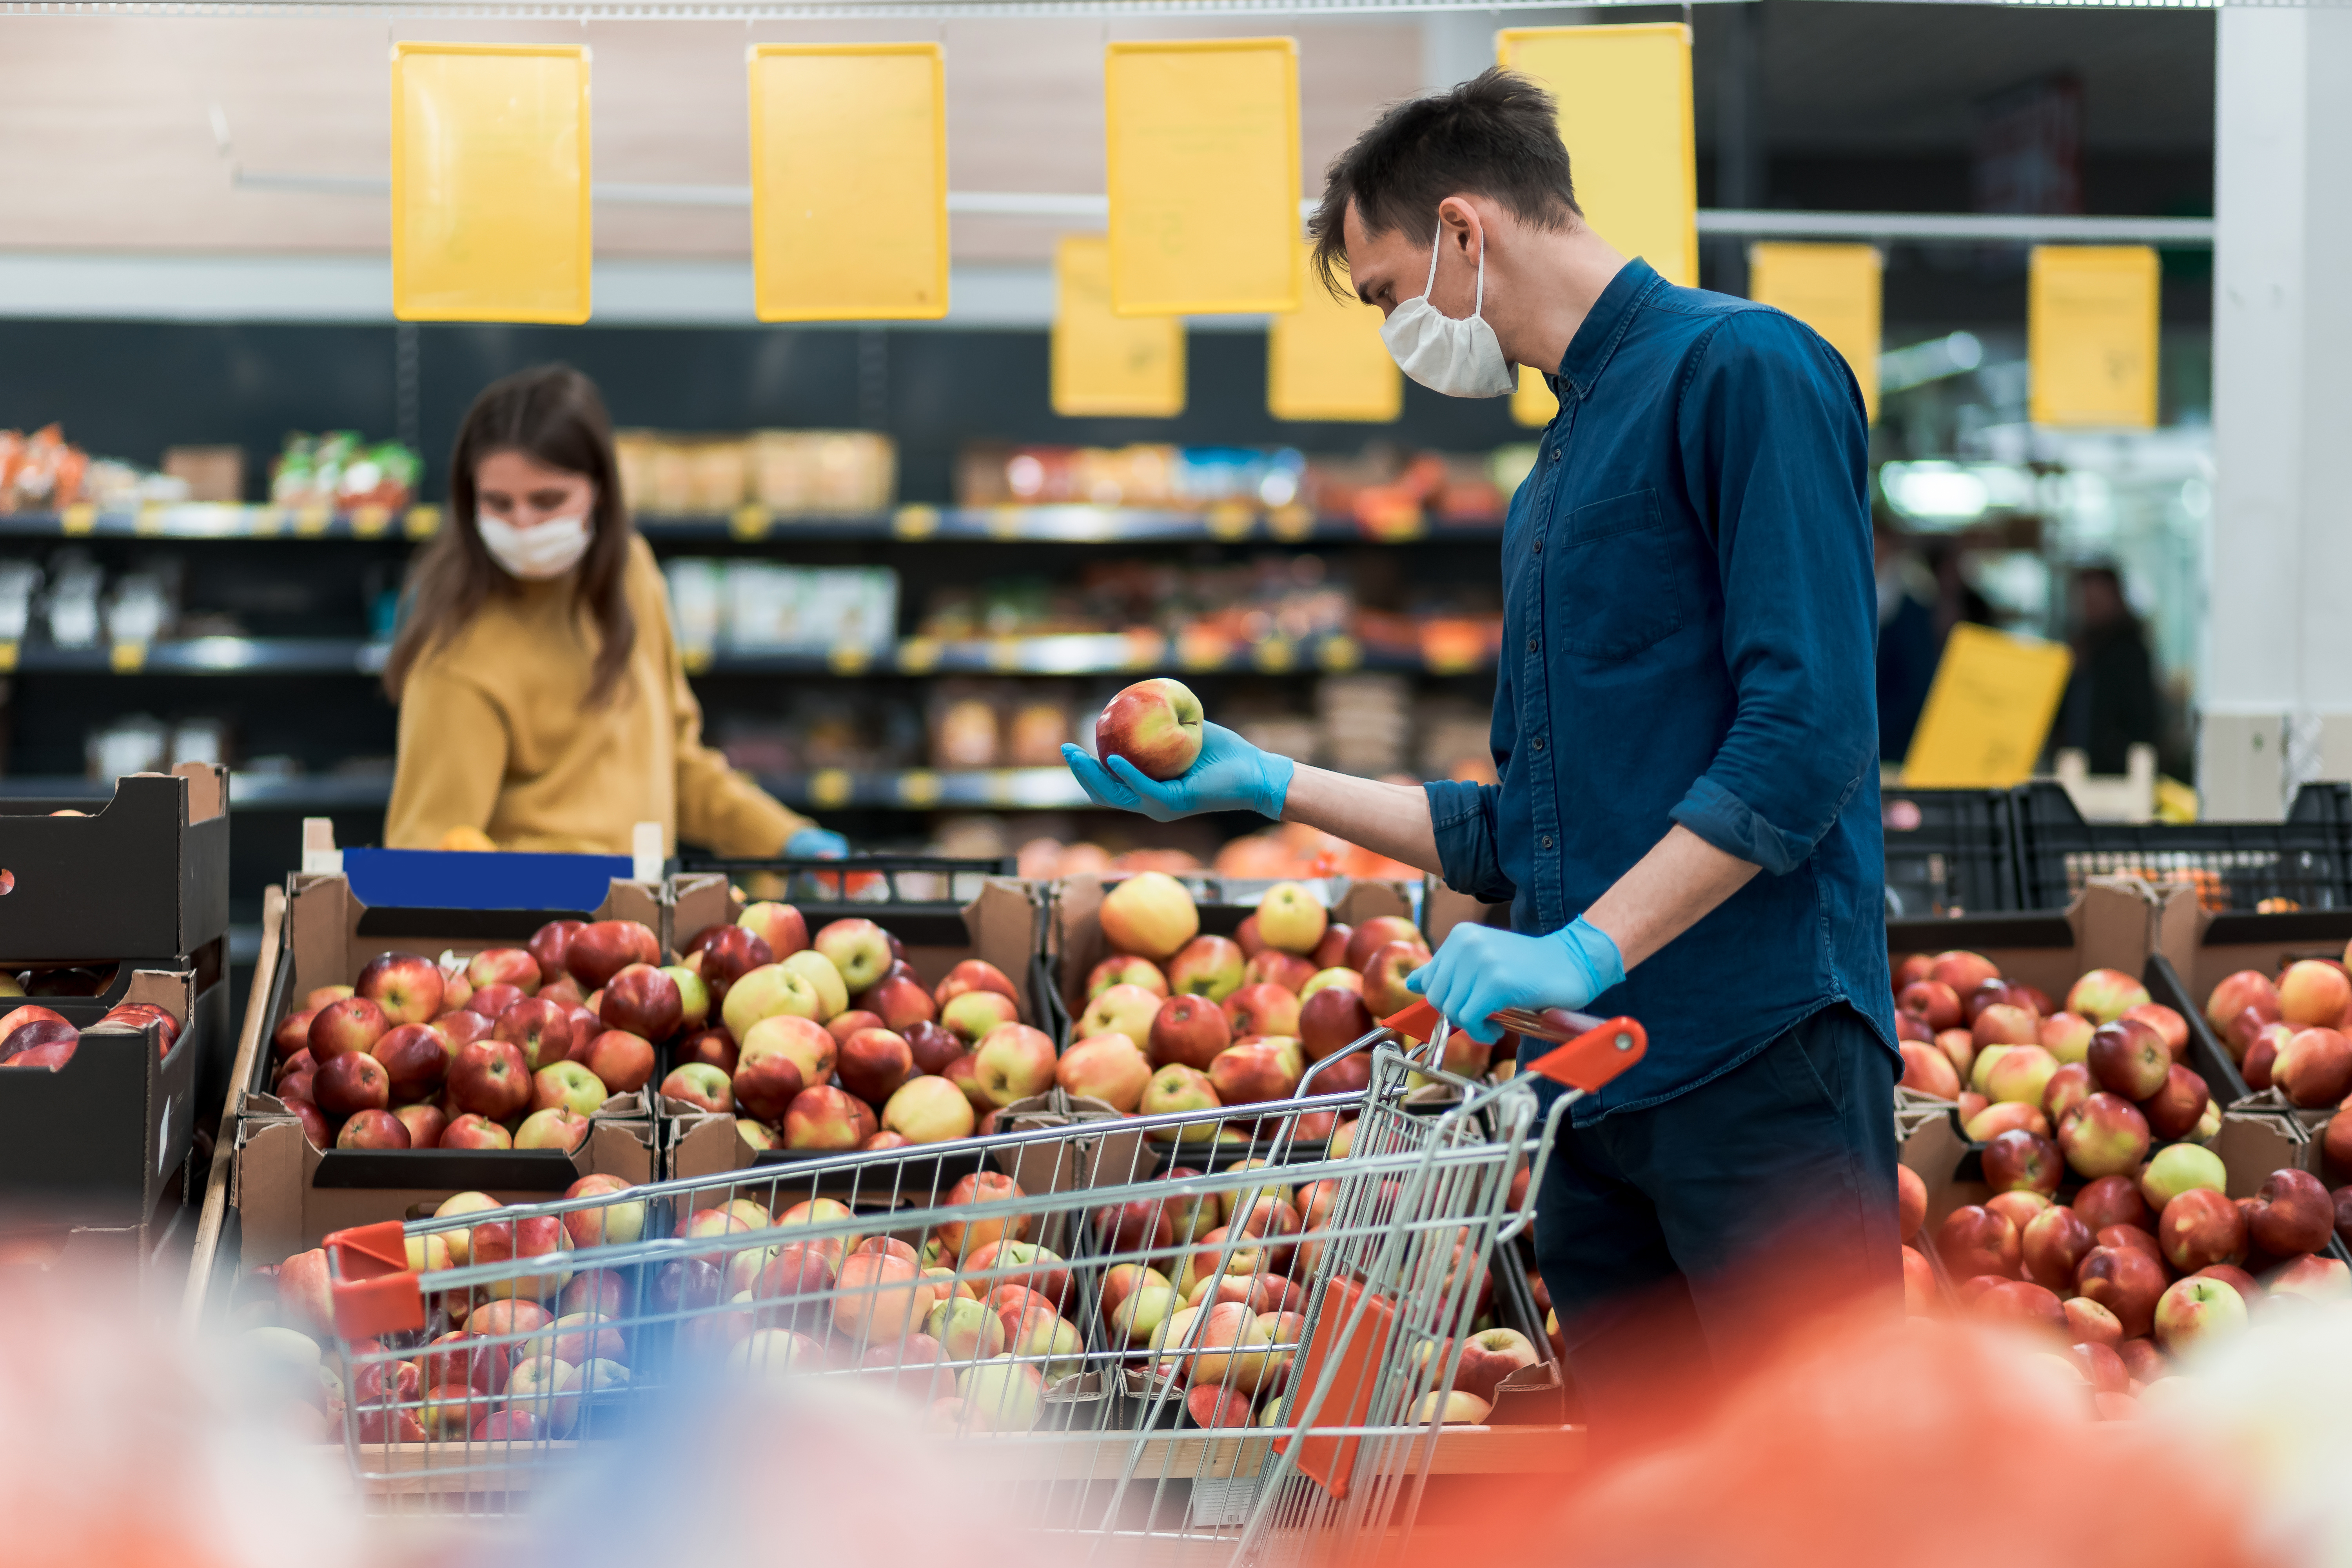 Shopping with Protective Mask